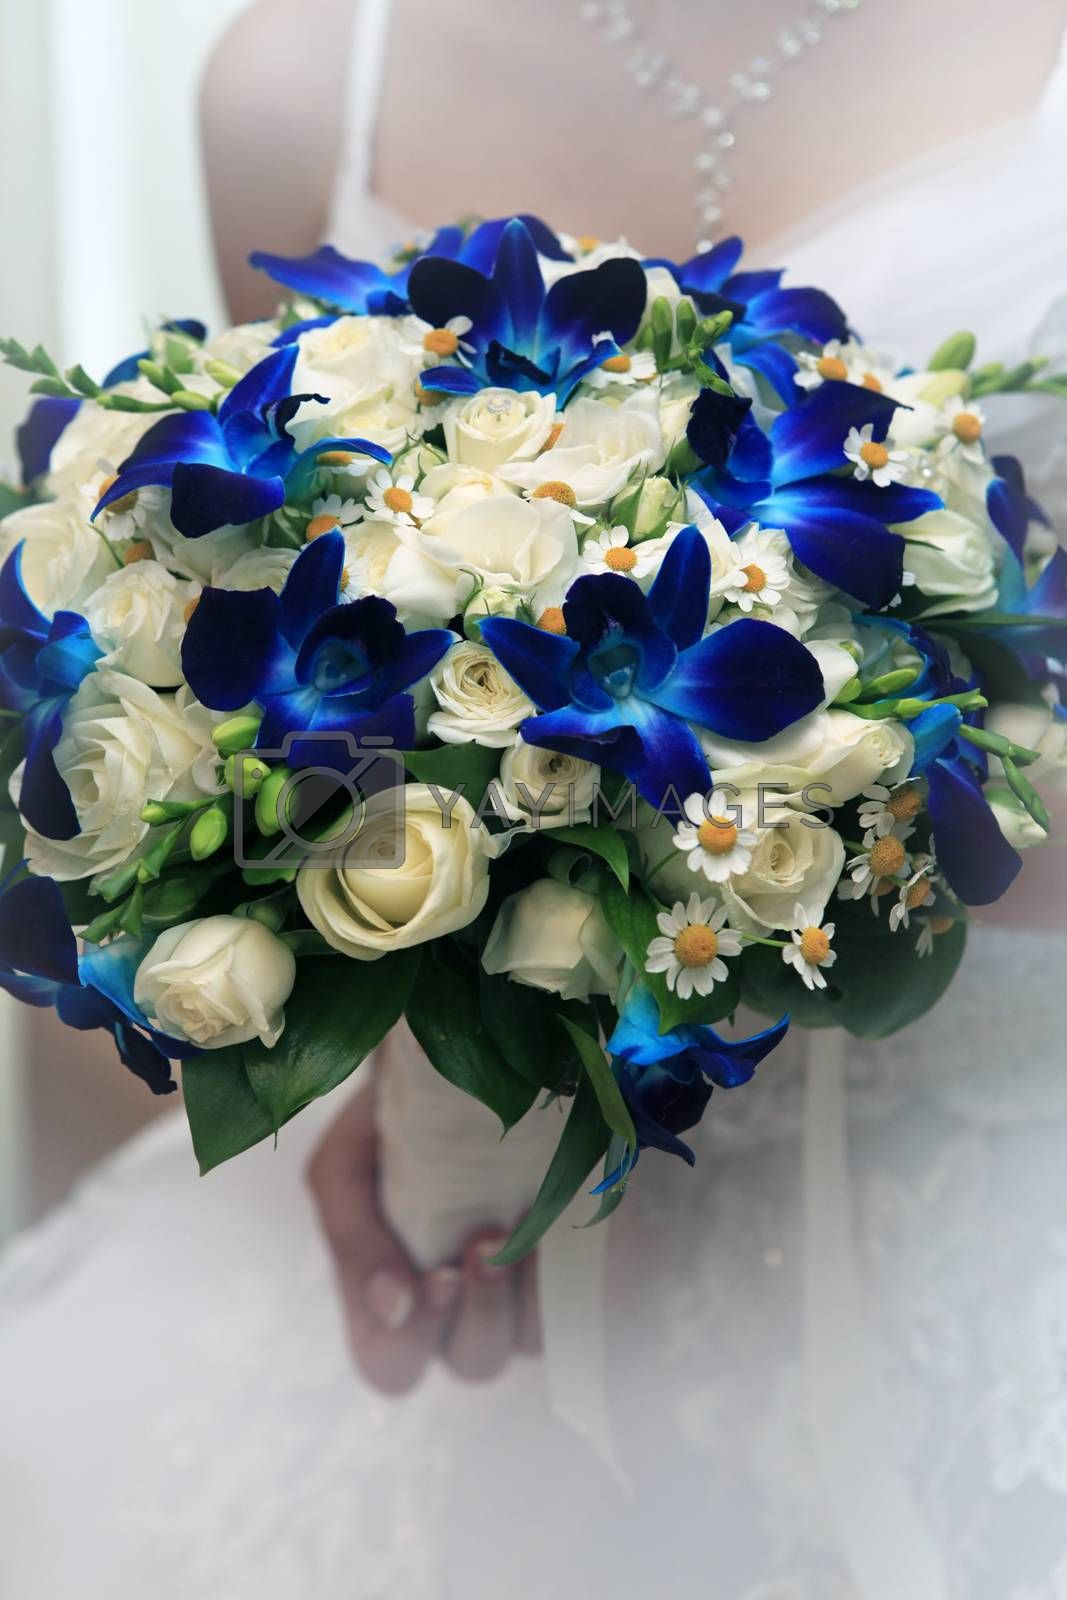 Wedding bouquet by friday